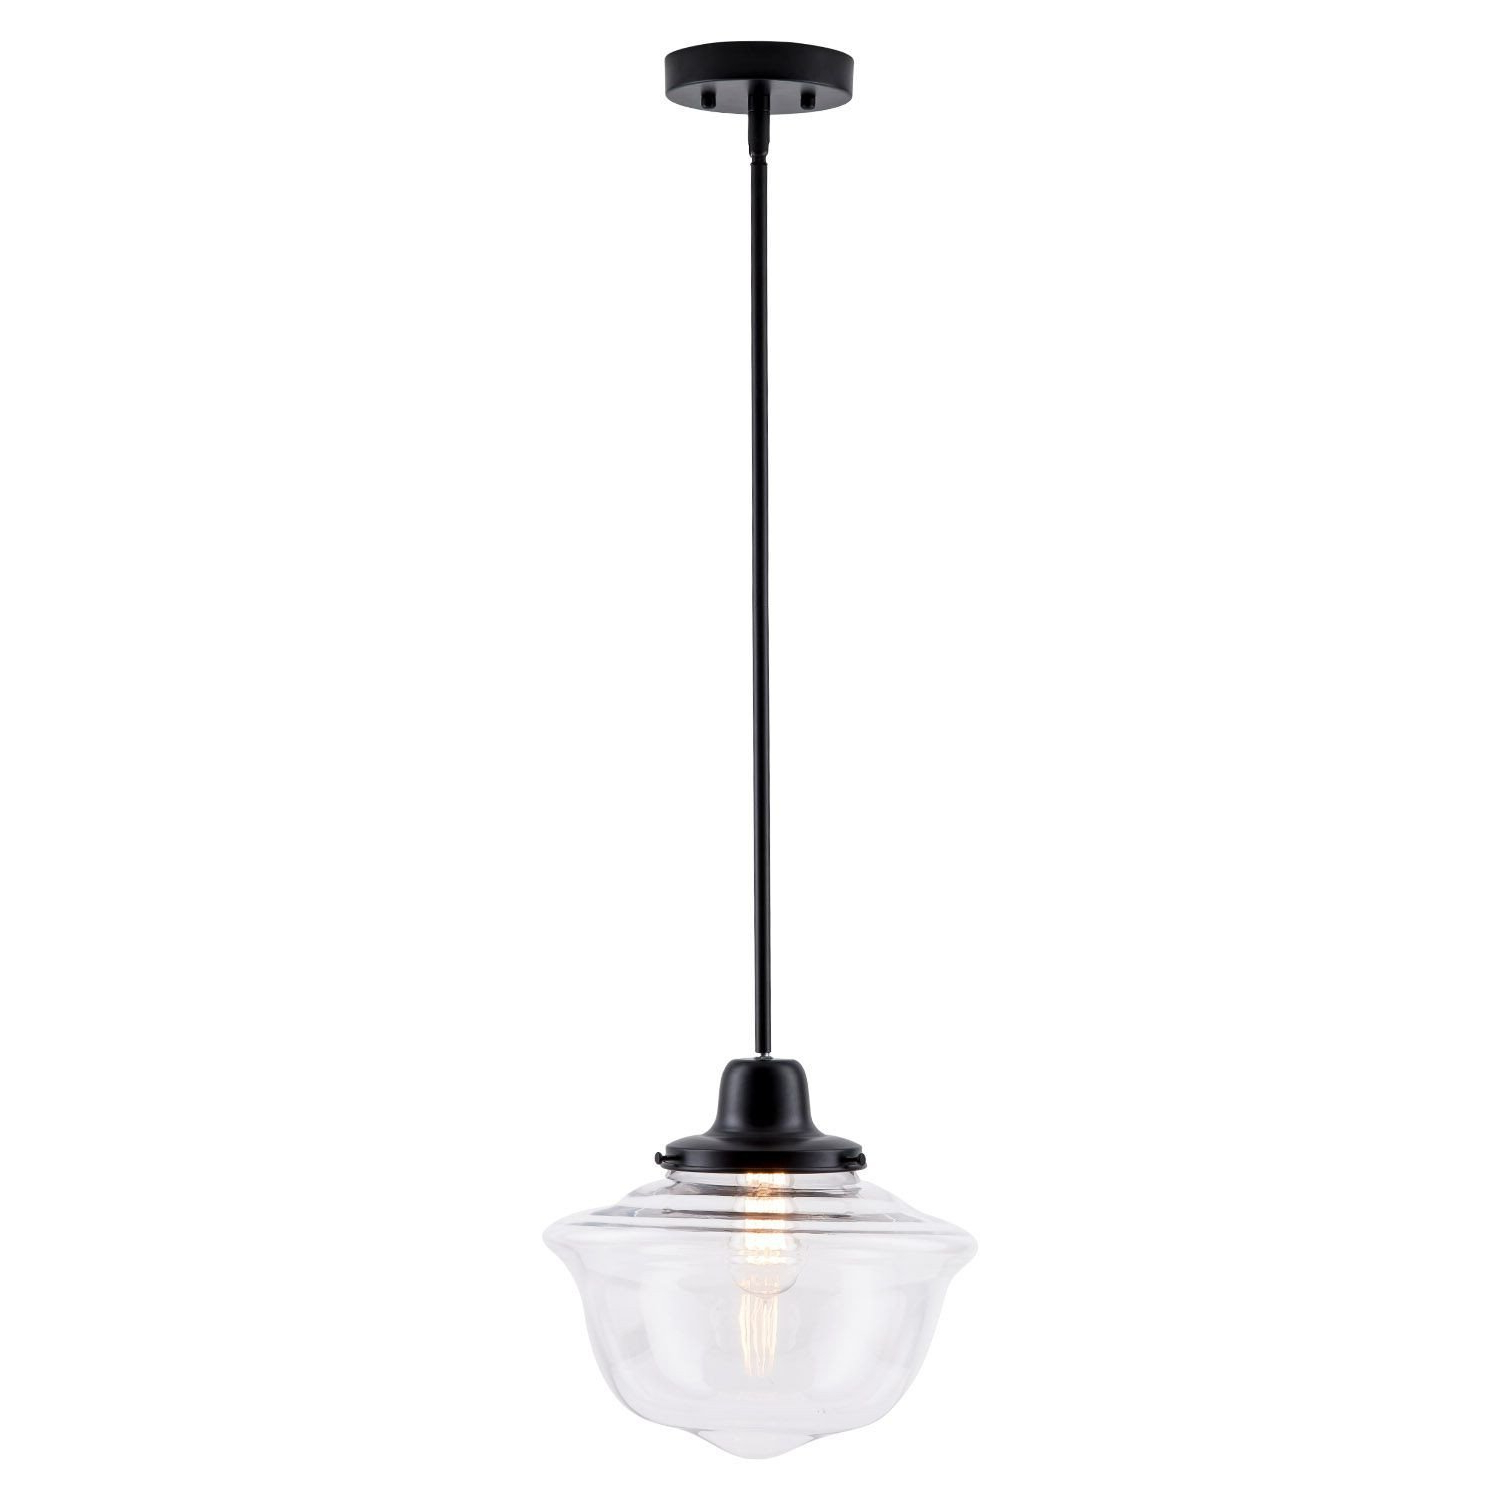 Most Up To Date Laurel Foundry Modern Farmhouse Isaiah 1 Light Single Schoolhouse Pendant Pertaining To Bainbridge 1 Light Single Cylinder Pendants (View 20 of 20)